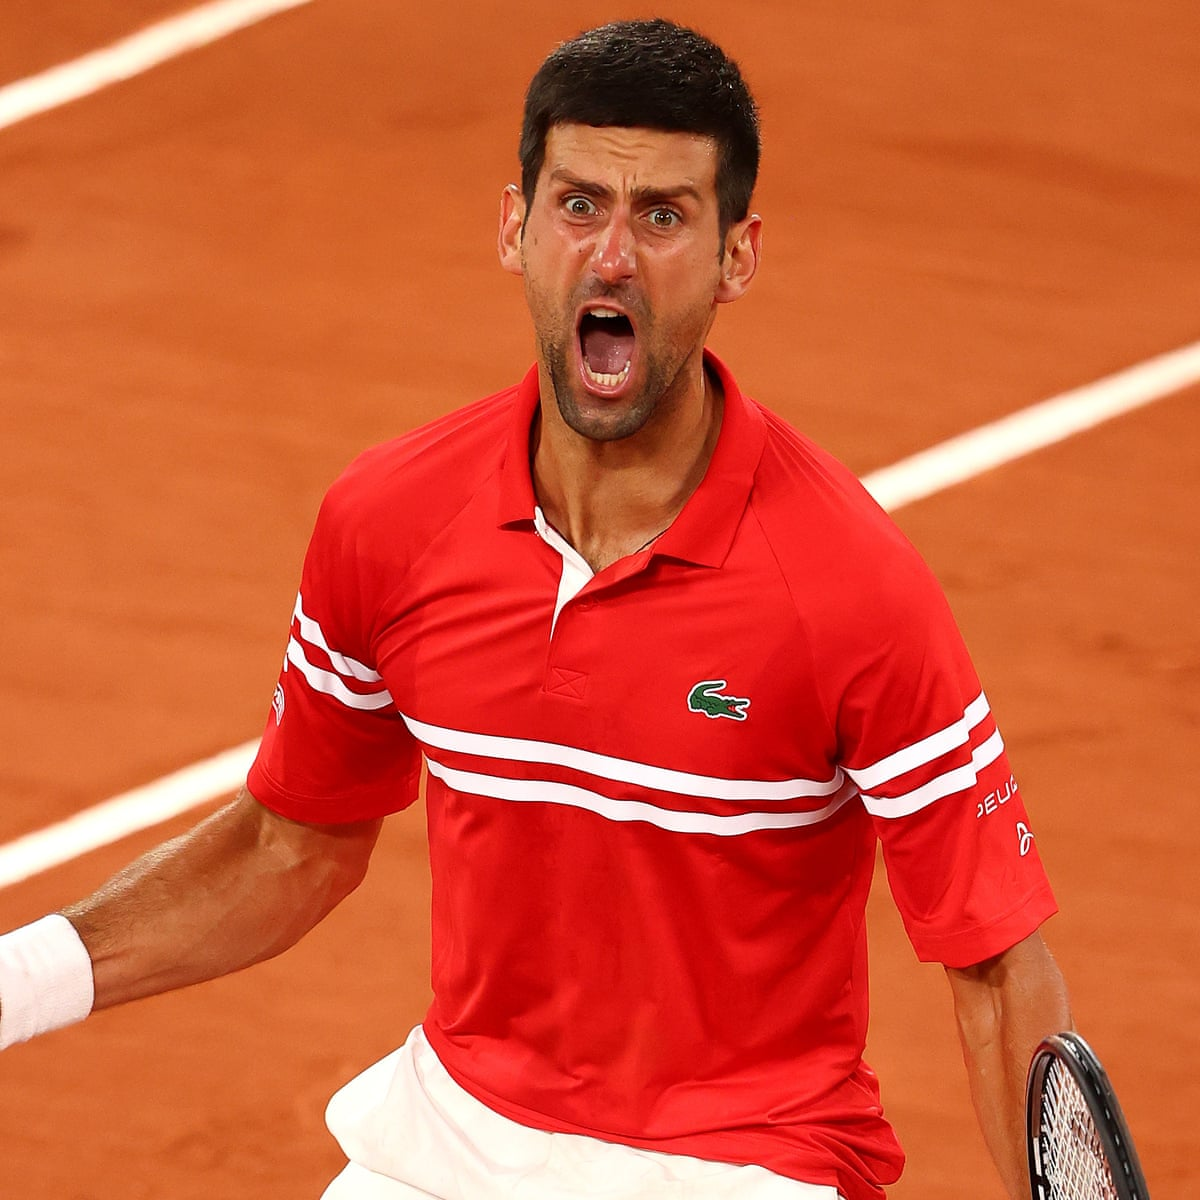 Djokovic Shuts Out French Open Silence And Boos To Set Up Nadal Semi Final French Open The Guardian